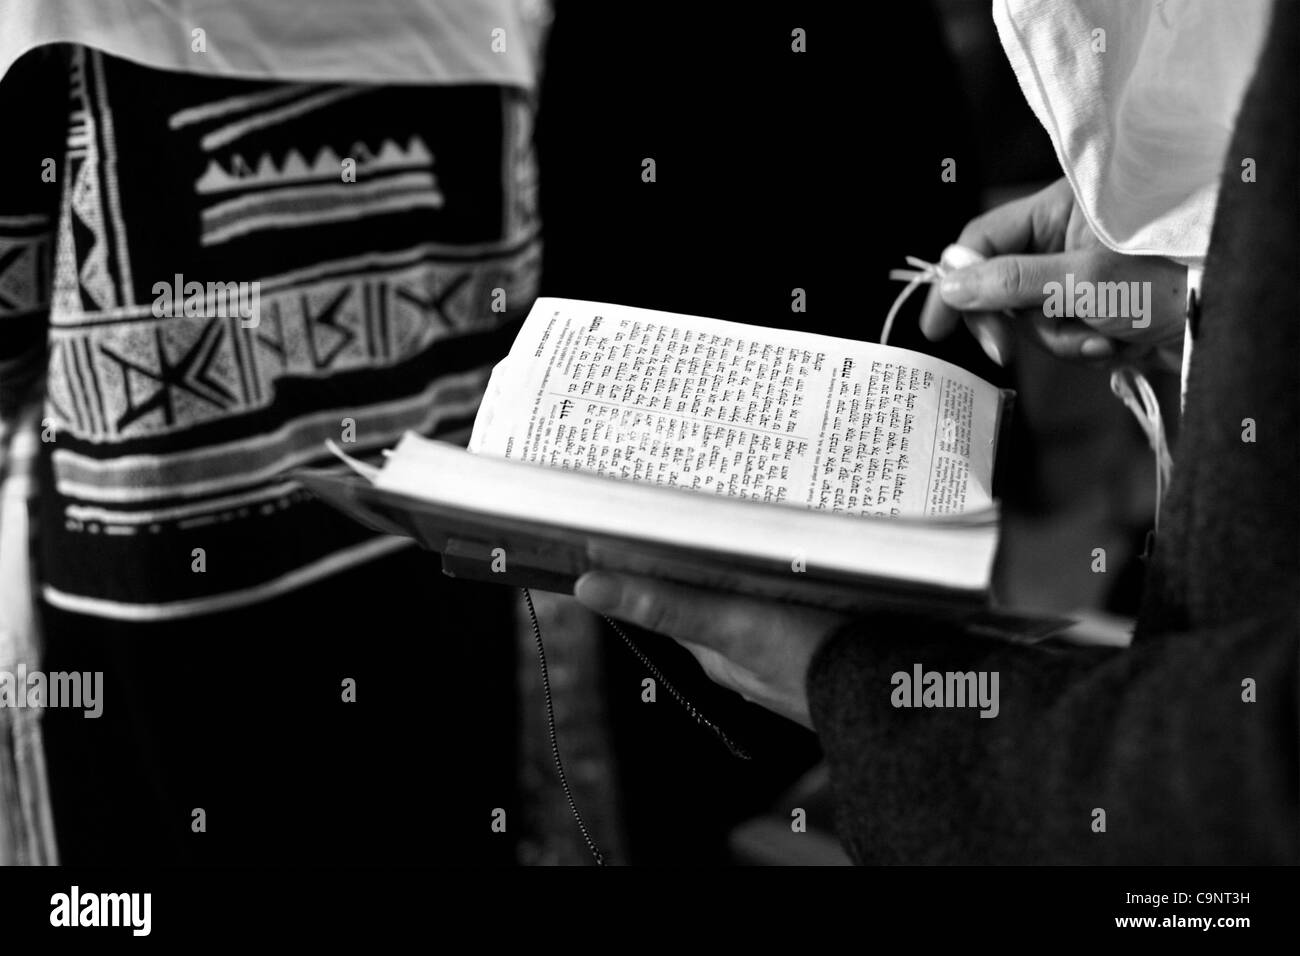 Feb 23, 2008 - Chicago, Illinois, USA -  Dinah Levi, 57, reads from the Siddur during Shabbat service at Beth Shalom - Stock Image